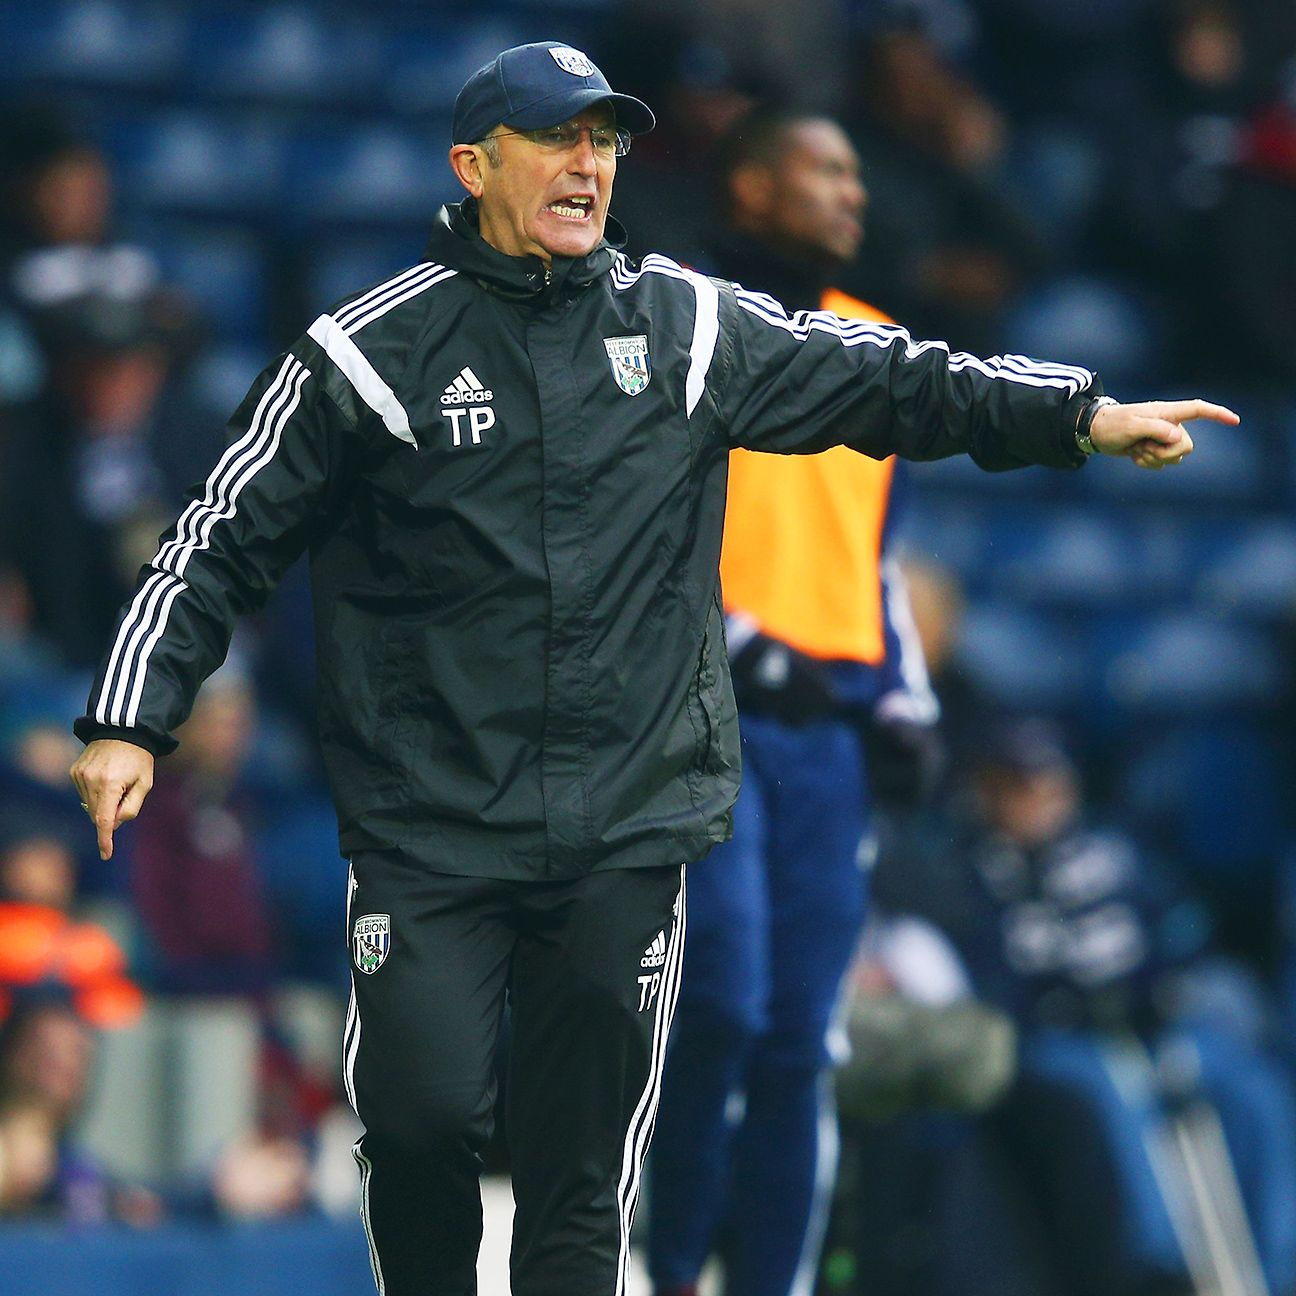 Tony Pulis' West Brom sit in 14th ahead of Saturday's visit from relegation-threatened QPR.